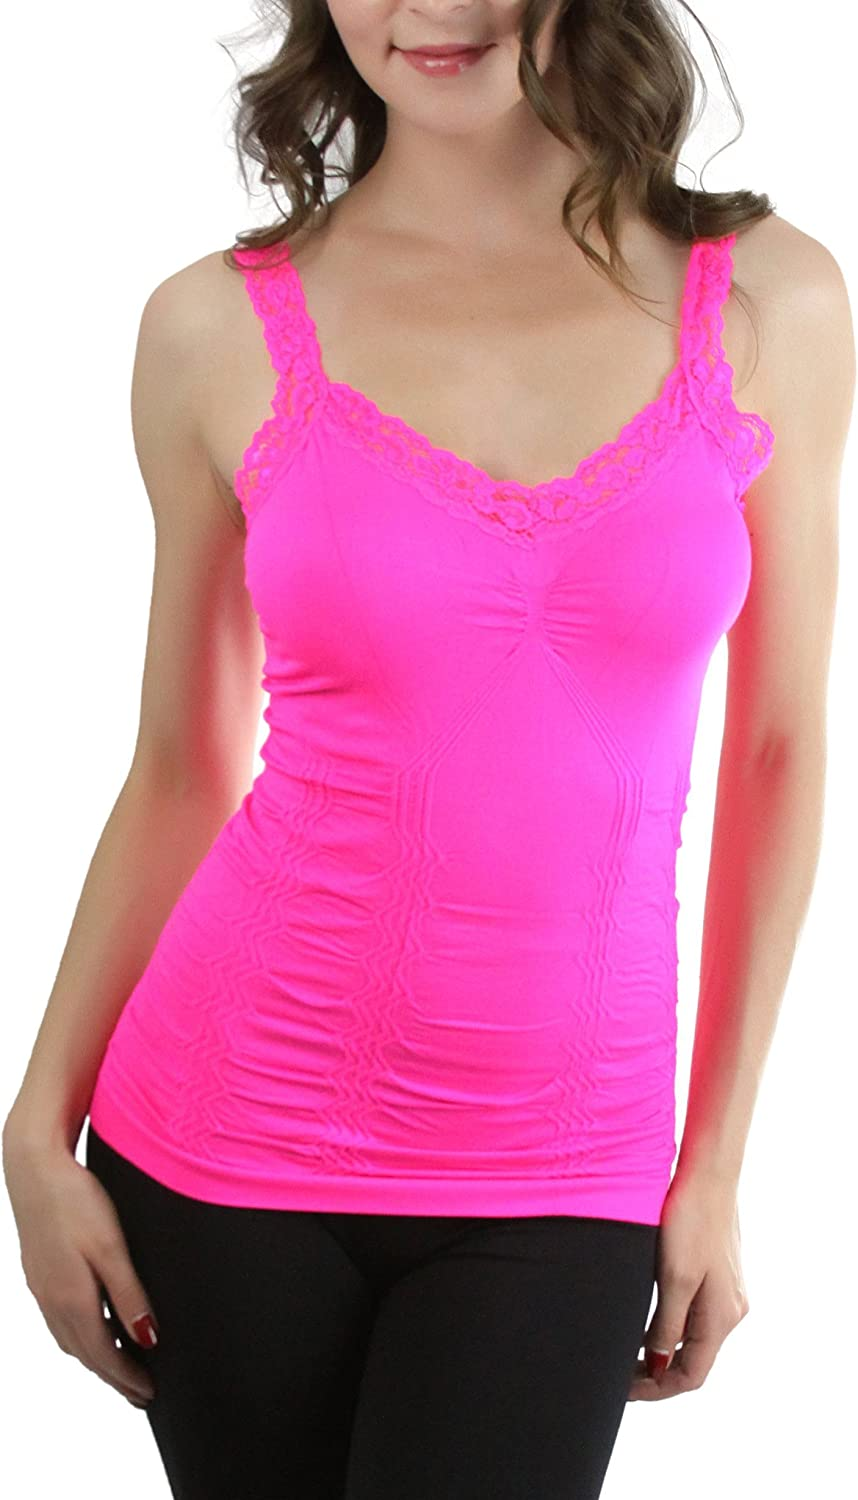 ToBeInStyle Women's Wrinkled Camisole - Hot Pink - One Size at  Women's Clothing store